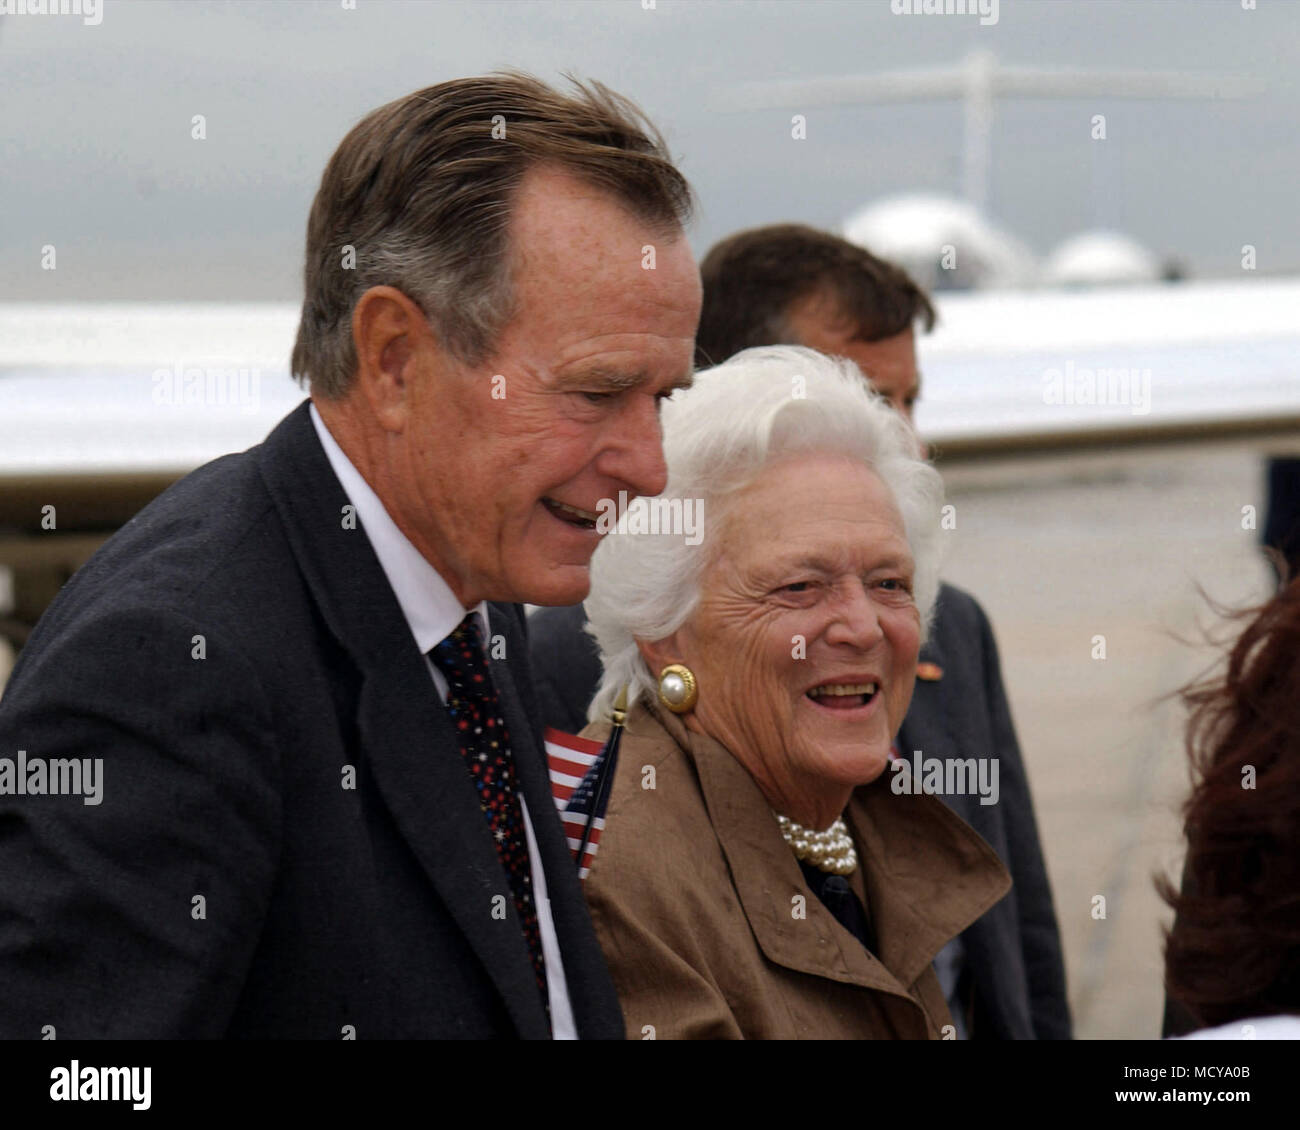 Former US President George Bush and First Lady Barbara Bush are greeted upon their arrival on Andrews Air Force Base, Maryland. They are here for the National Prayer and Reconciliation Service at the National Cathedral in Washington D.C. - Stock Image